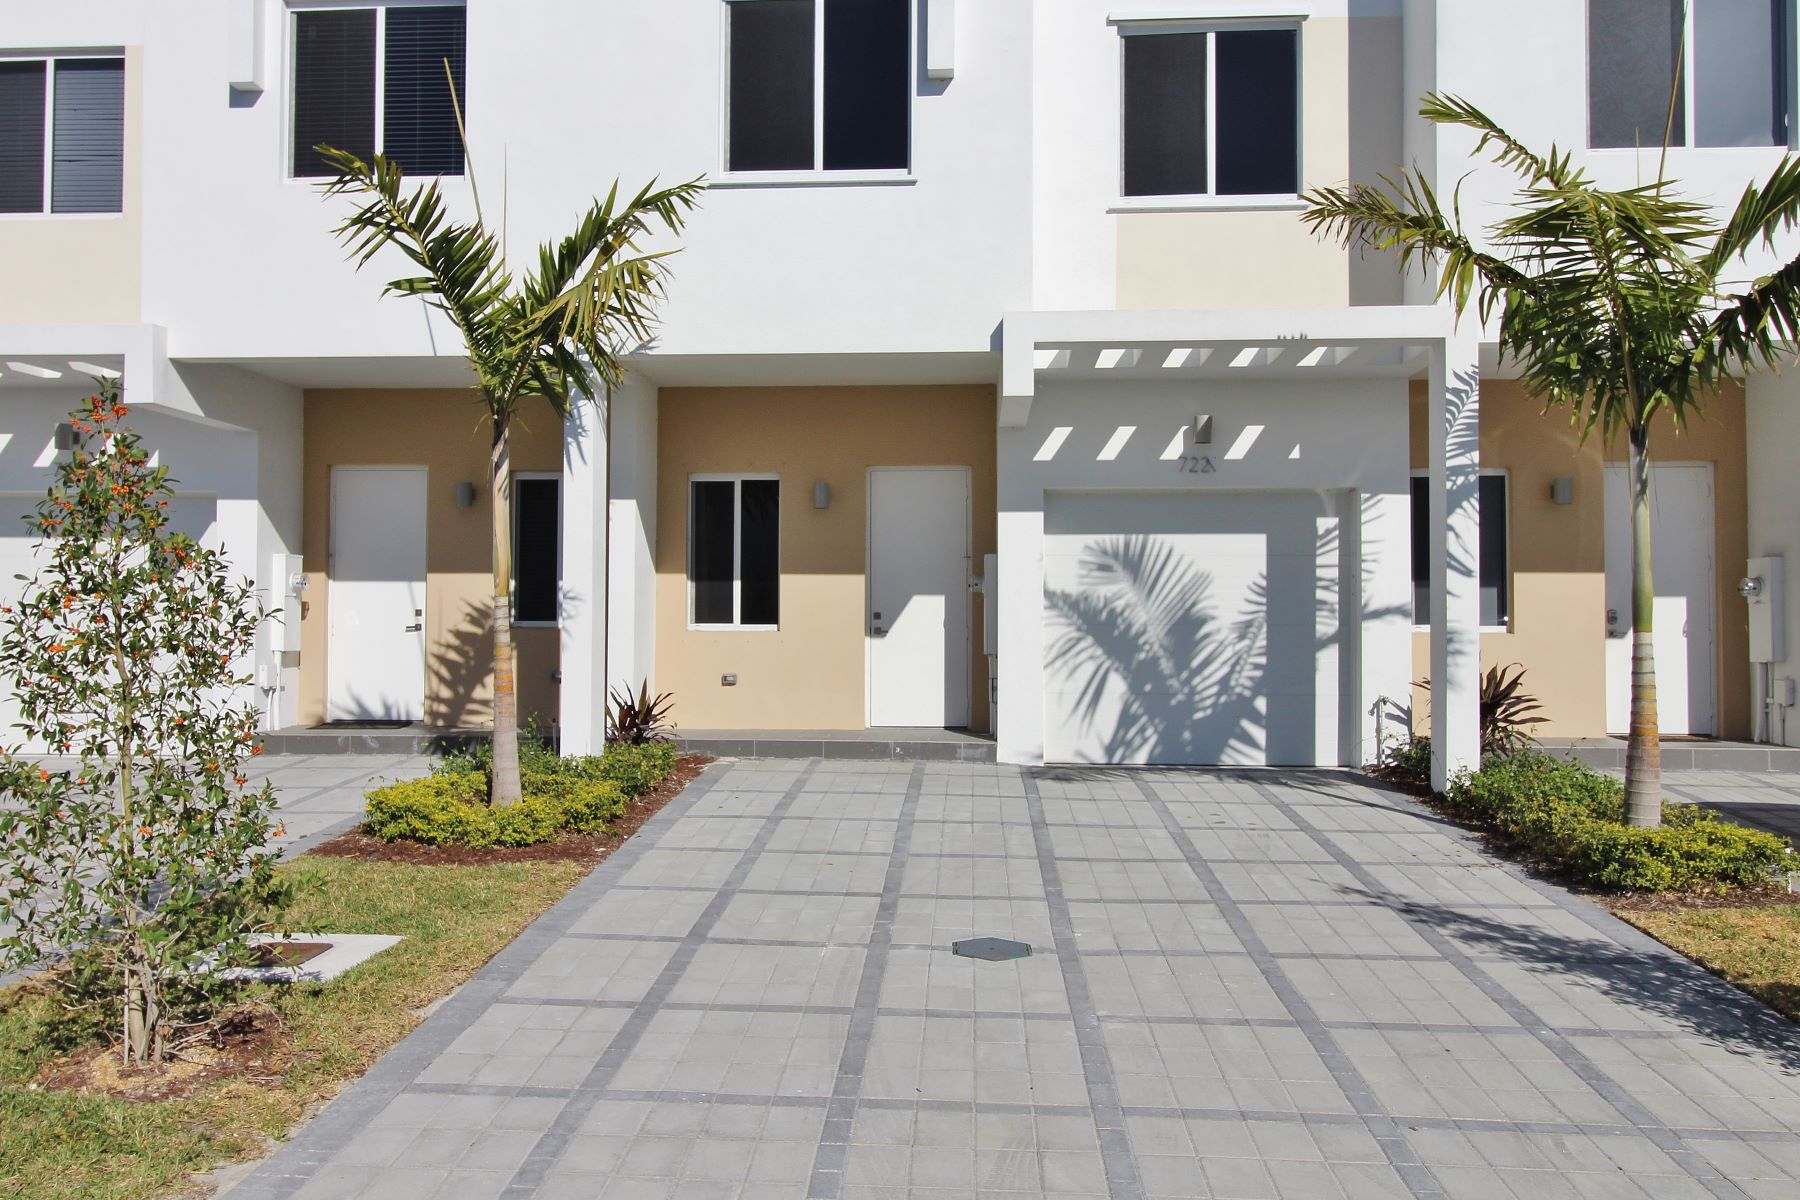 Townhouse for Sale at 7221 Nw 102nd Pl 7221 Nw 102nd Pl Miami, Florida 33178 United States